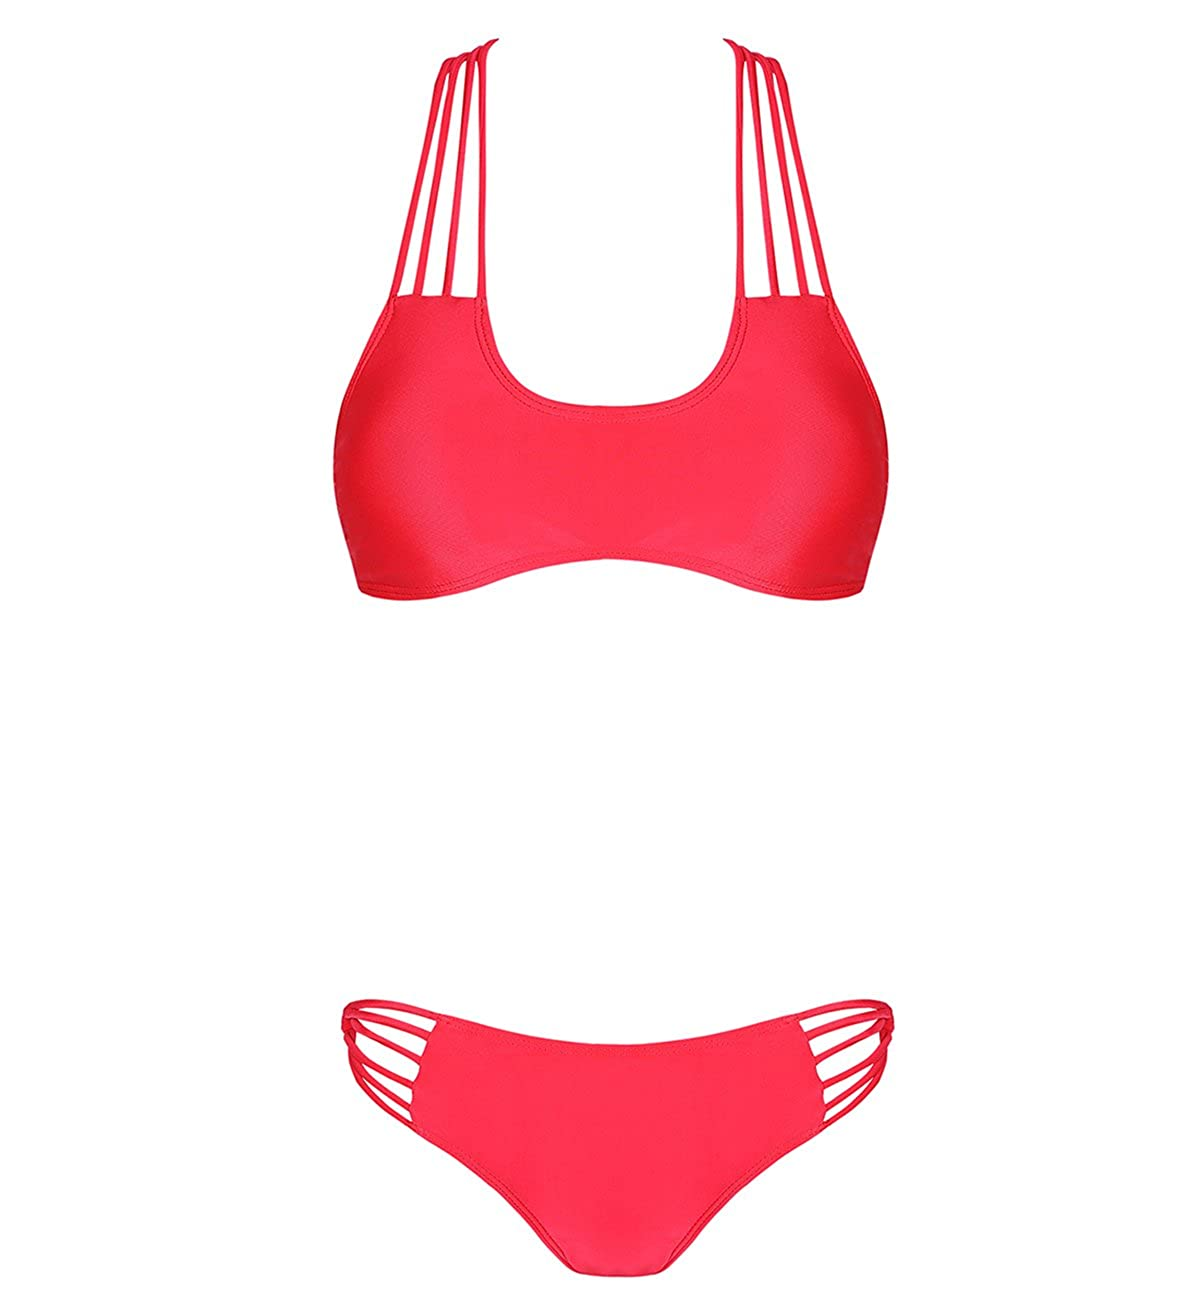 DD&MM Cross Back Halter Bikini Swimsuits for Women Red L FB261REDL